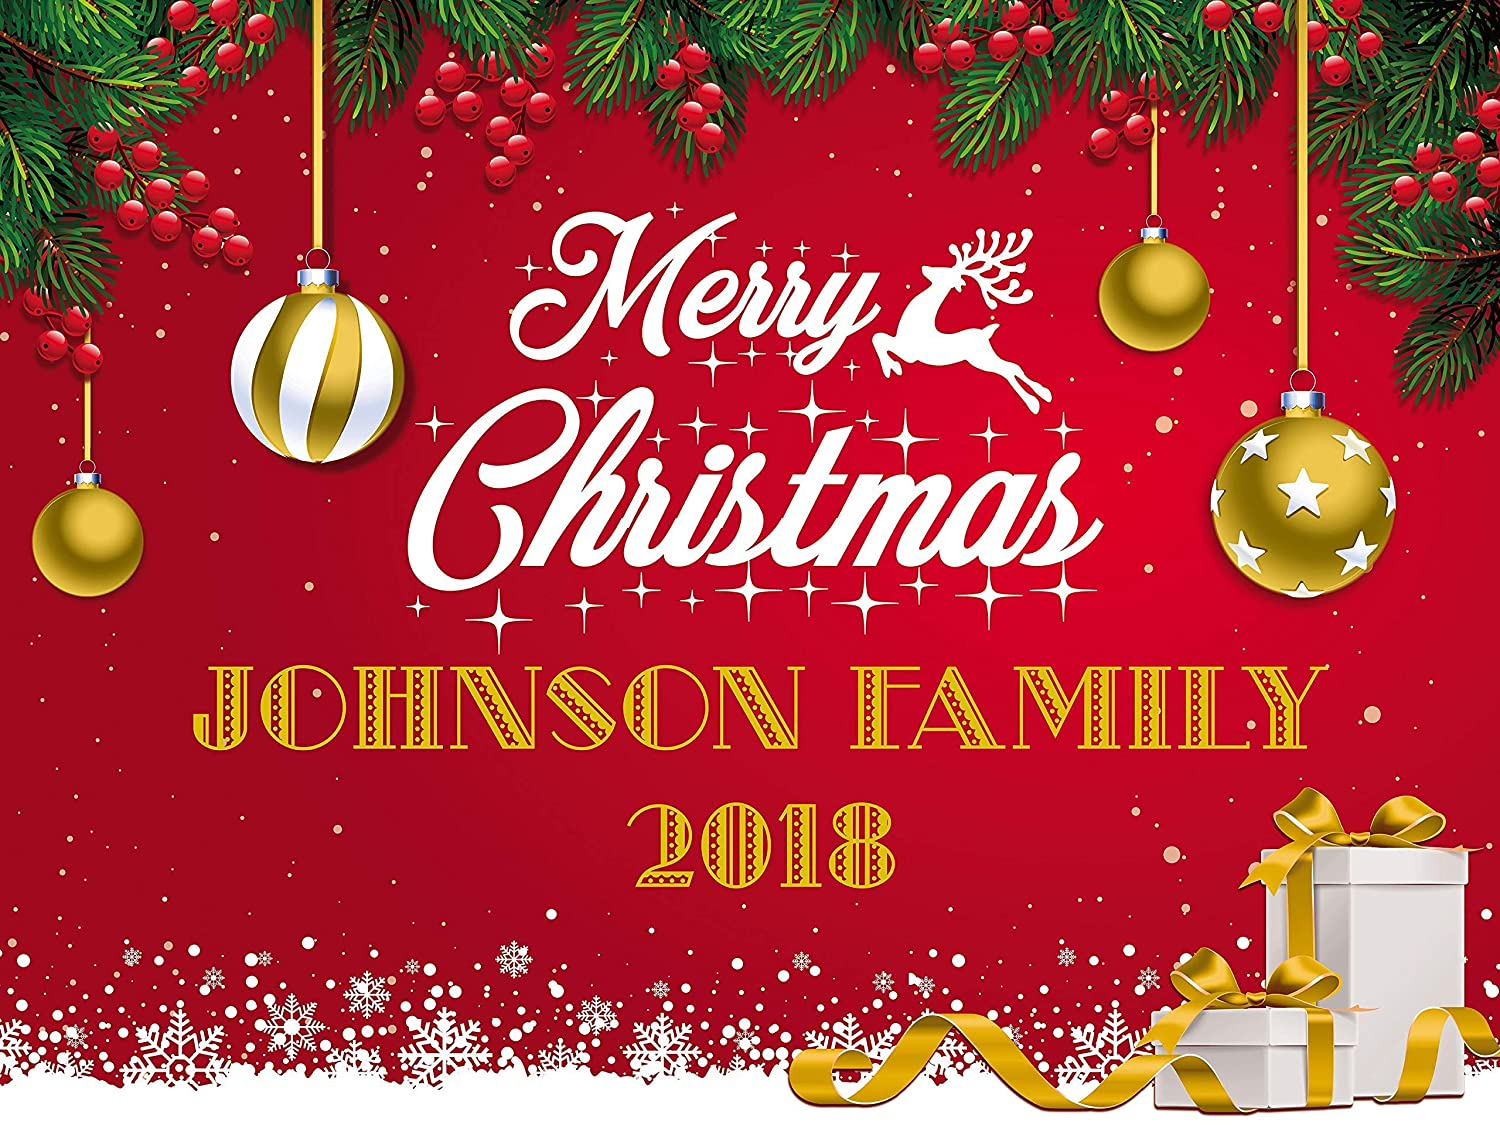 Merry Christmas Family.Amazon Com Merry Christmas Holiday Party Banner Festive